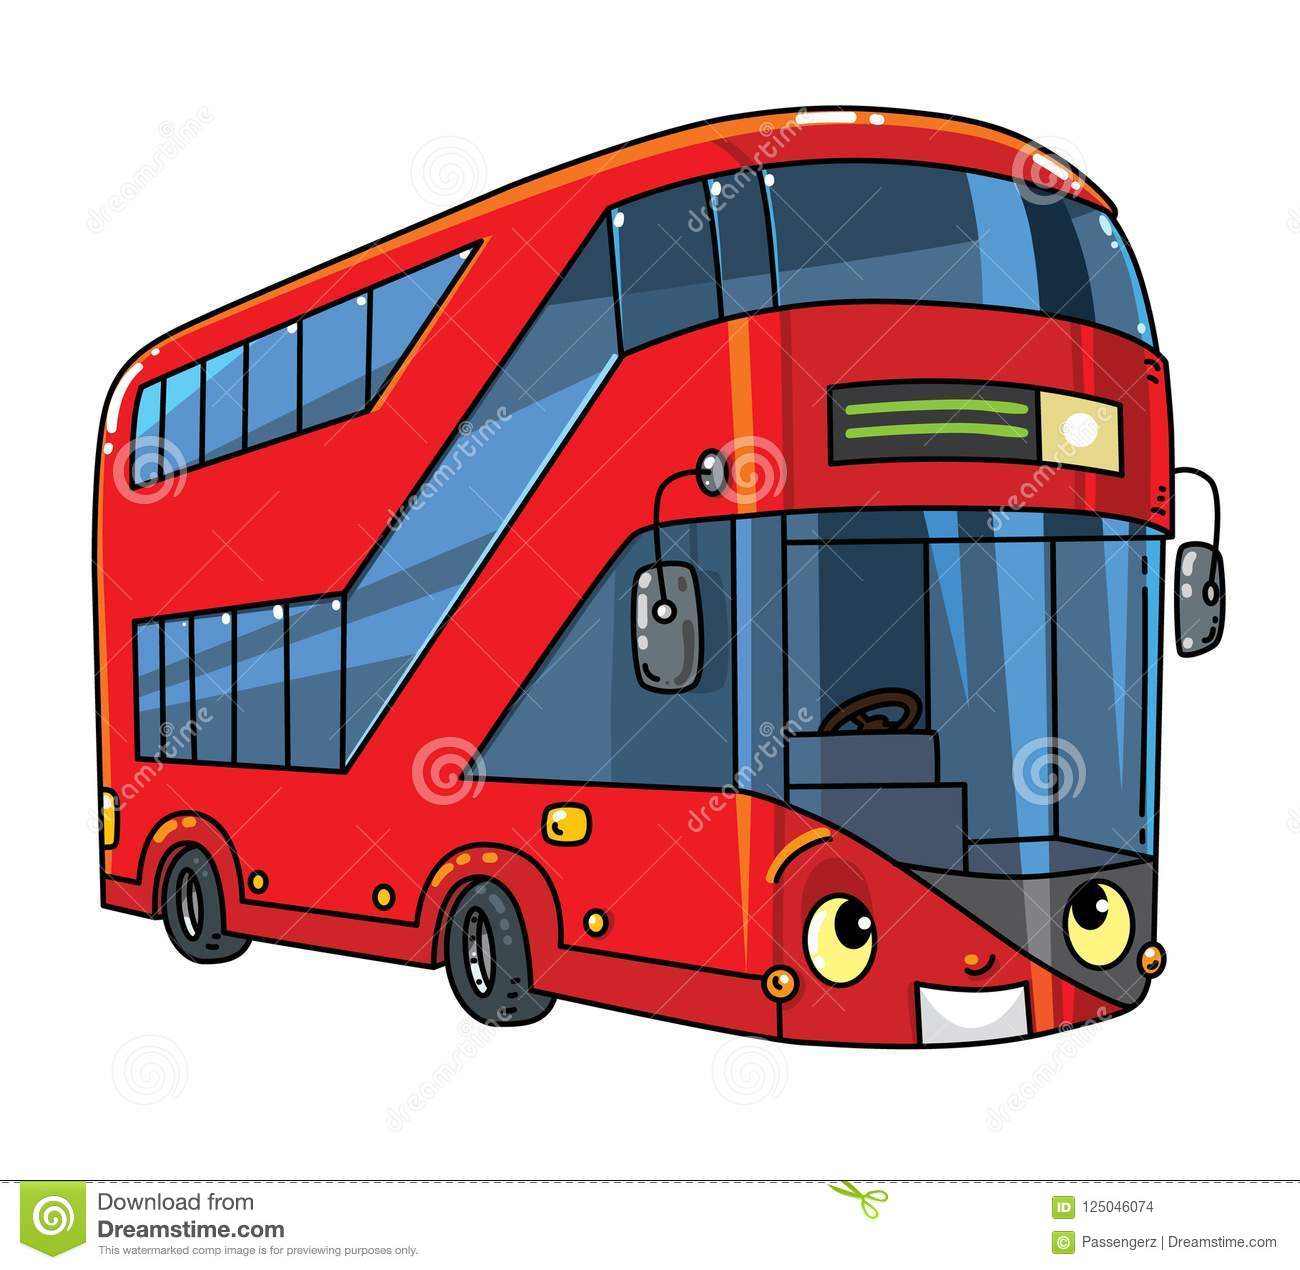 Funny London double-deck red bus with eyes